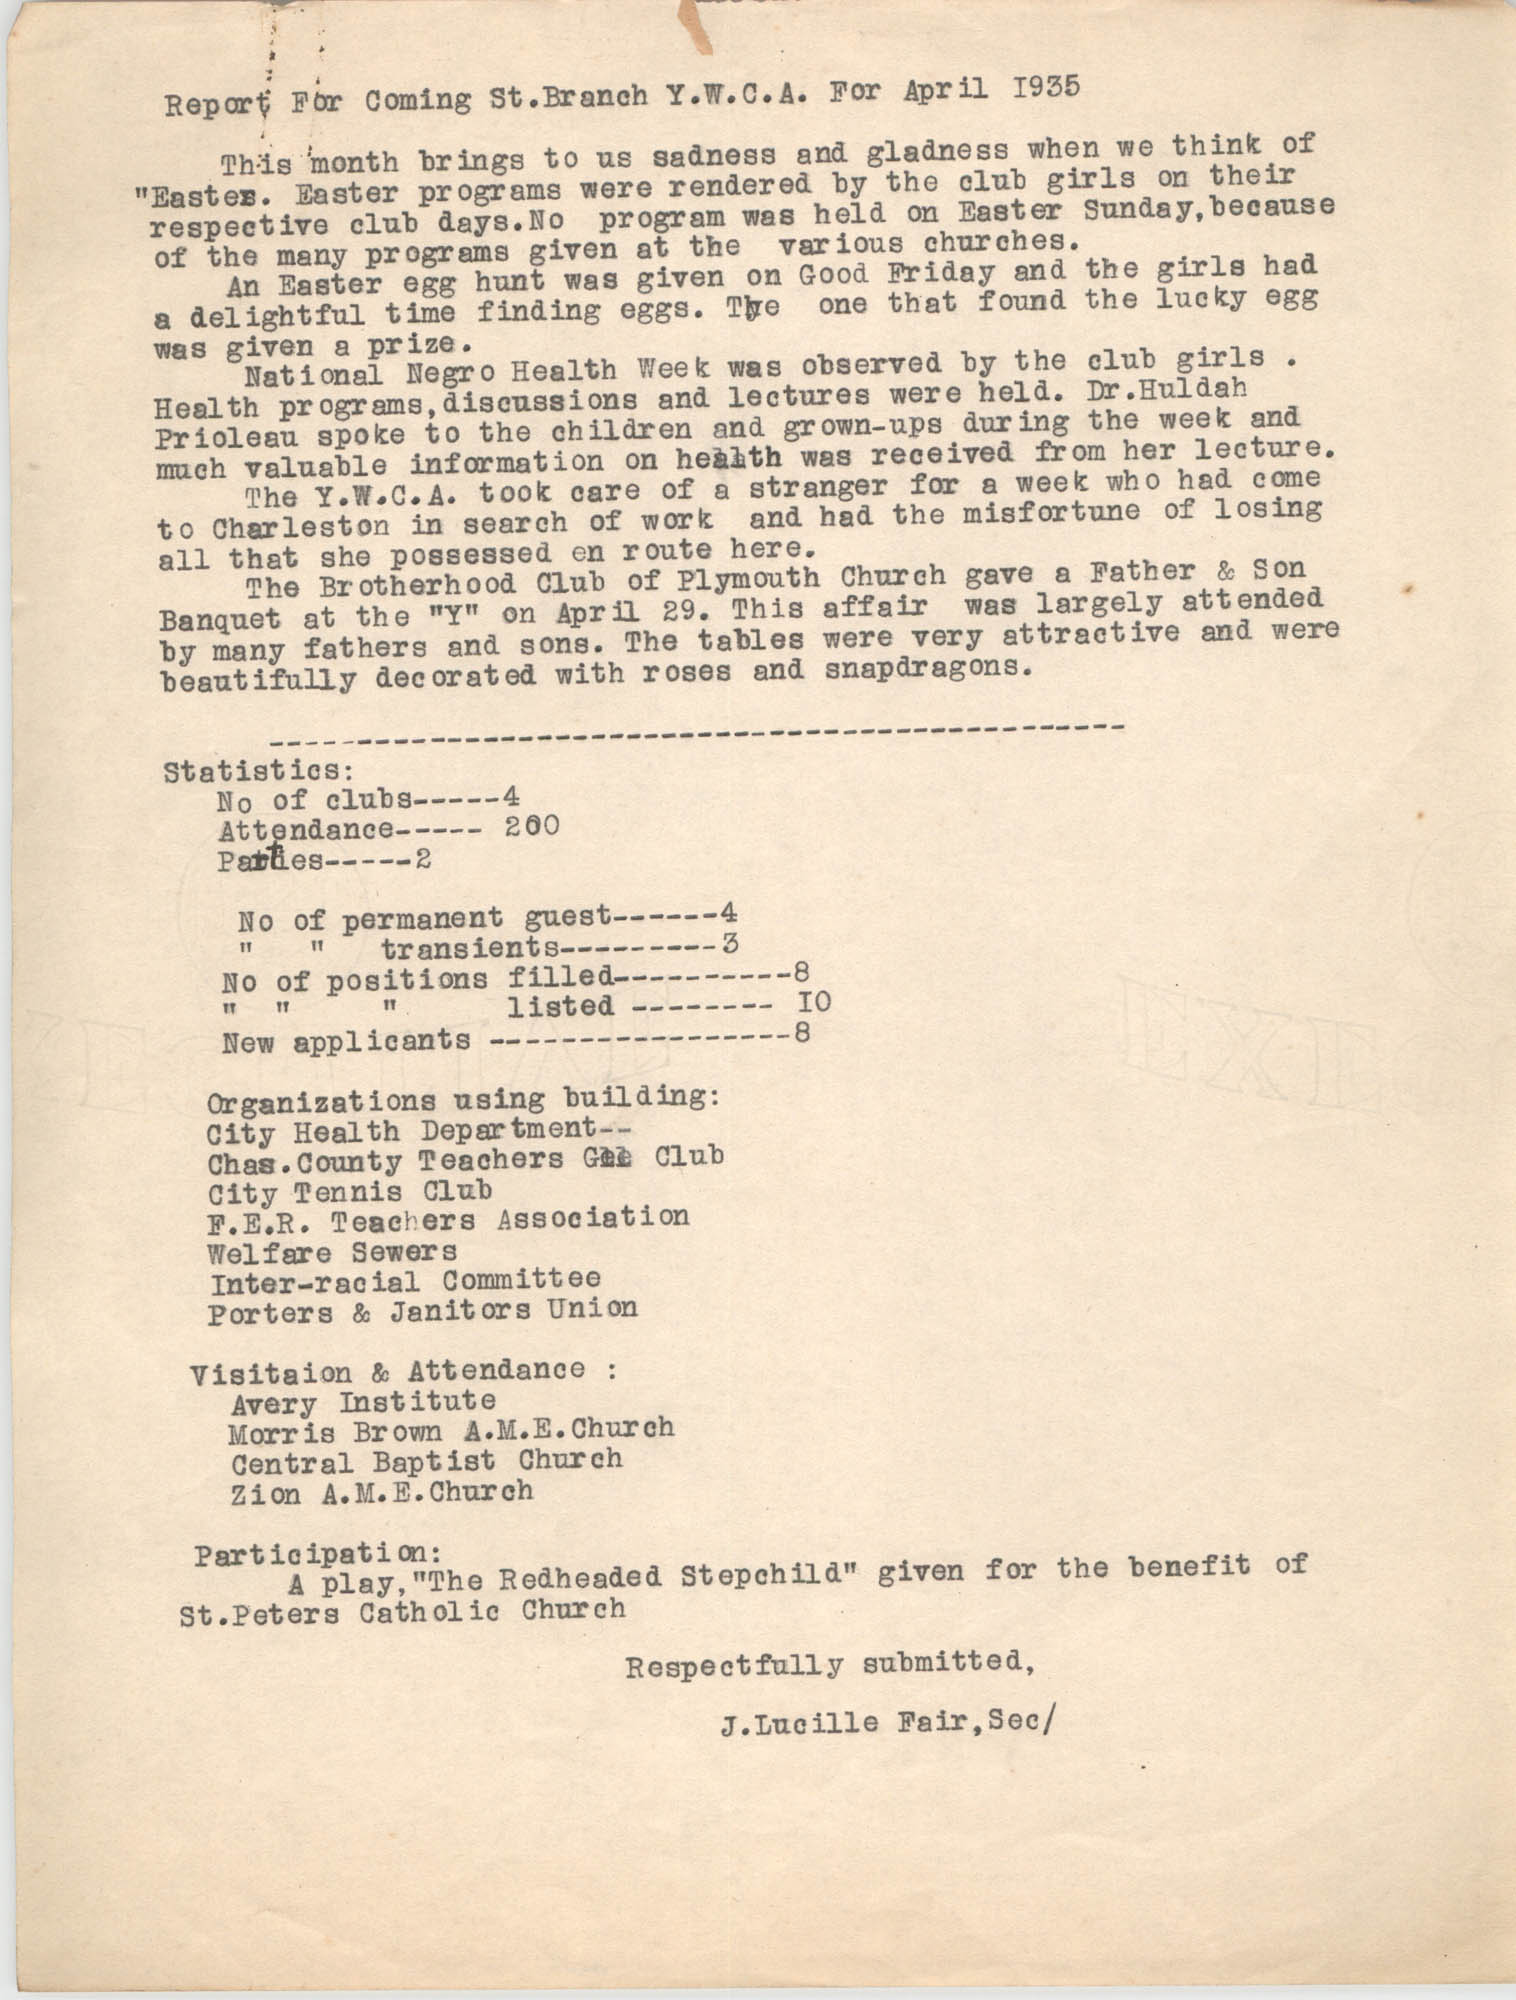 Monthly Report for the Coming Street Y.W.C.A., April 1935